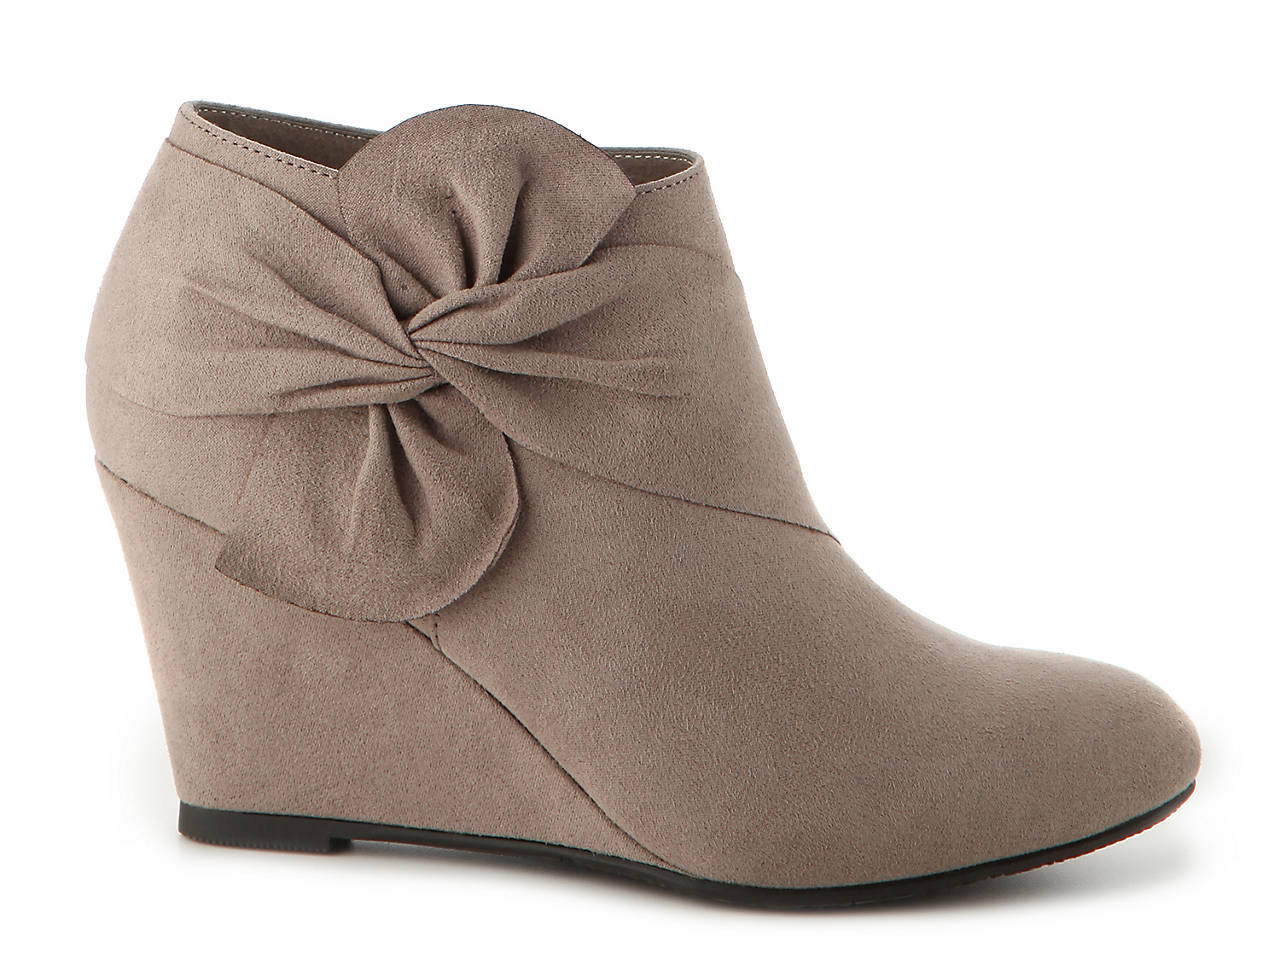 860269454d3f CL by Laundry Vivid Wedge Bootie Women s Shoes